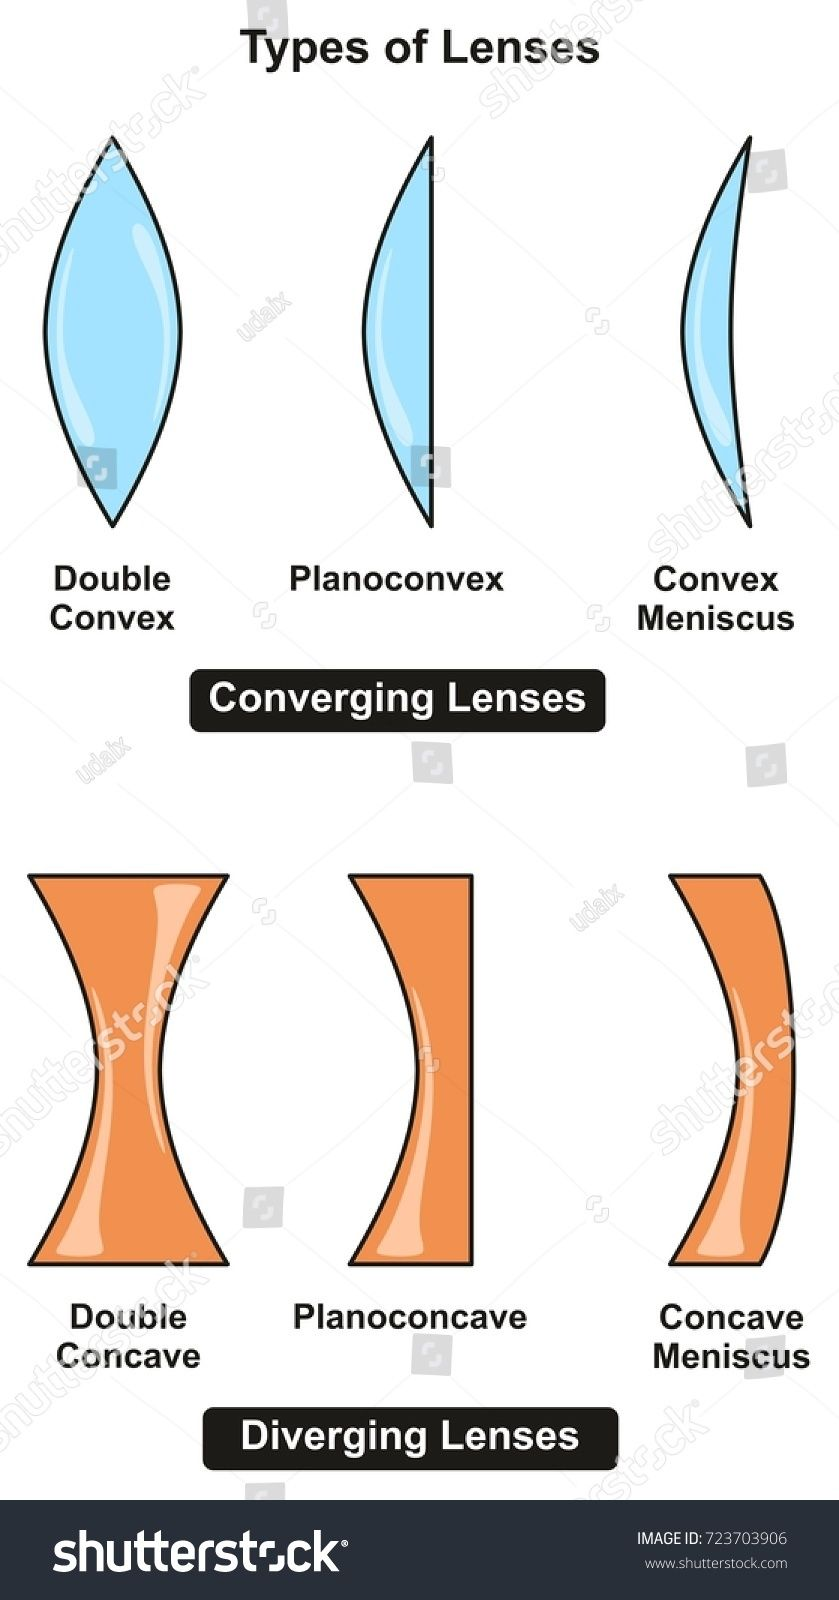 Types Of Lenses Infographic Diagram Including Converging And Diverging With Sub Types For Each Of Them For Opt Aesthetic Template Infographic Science Education